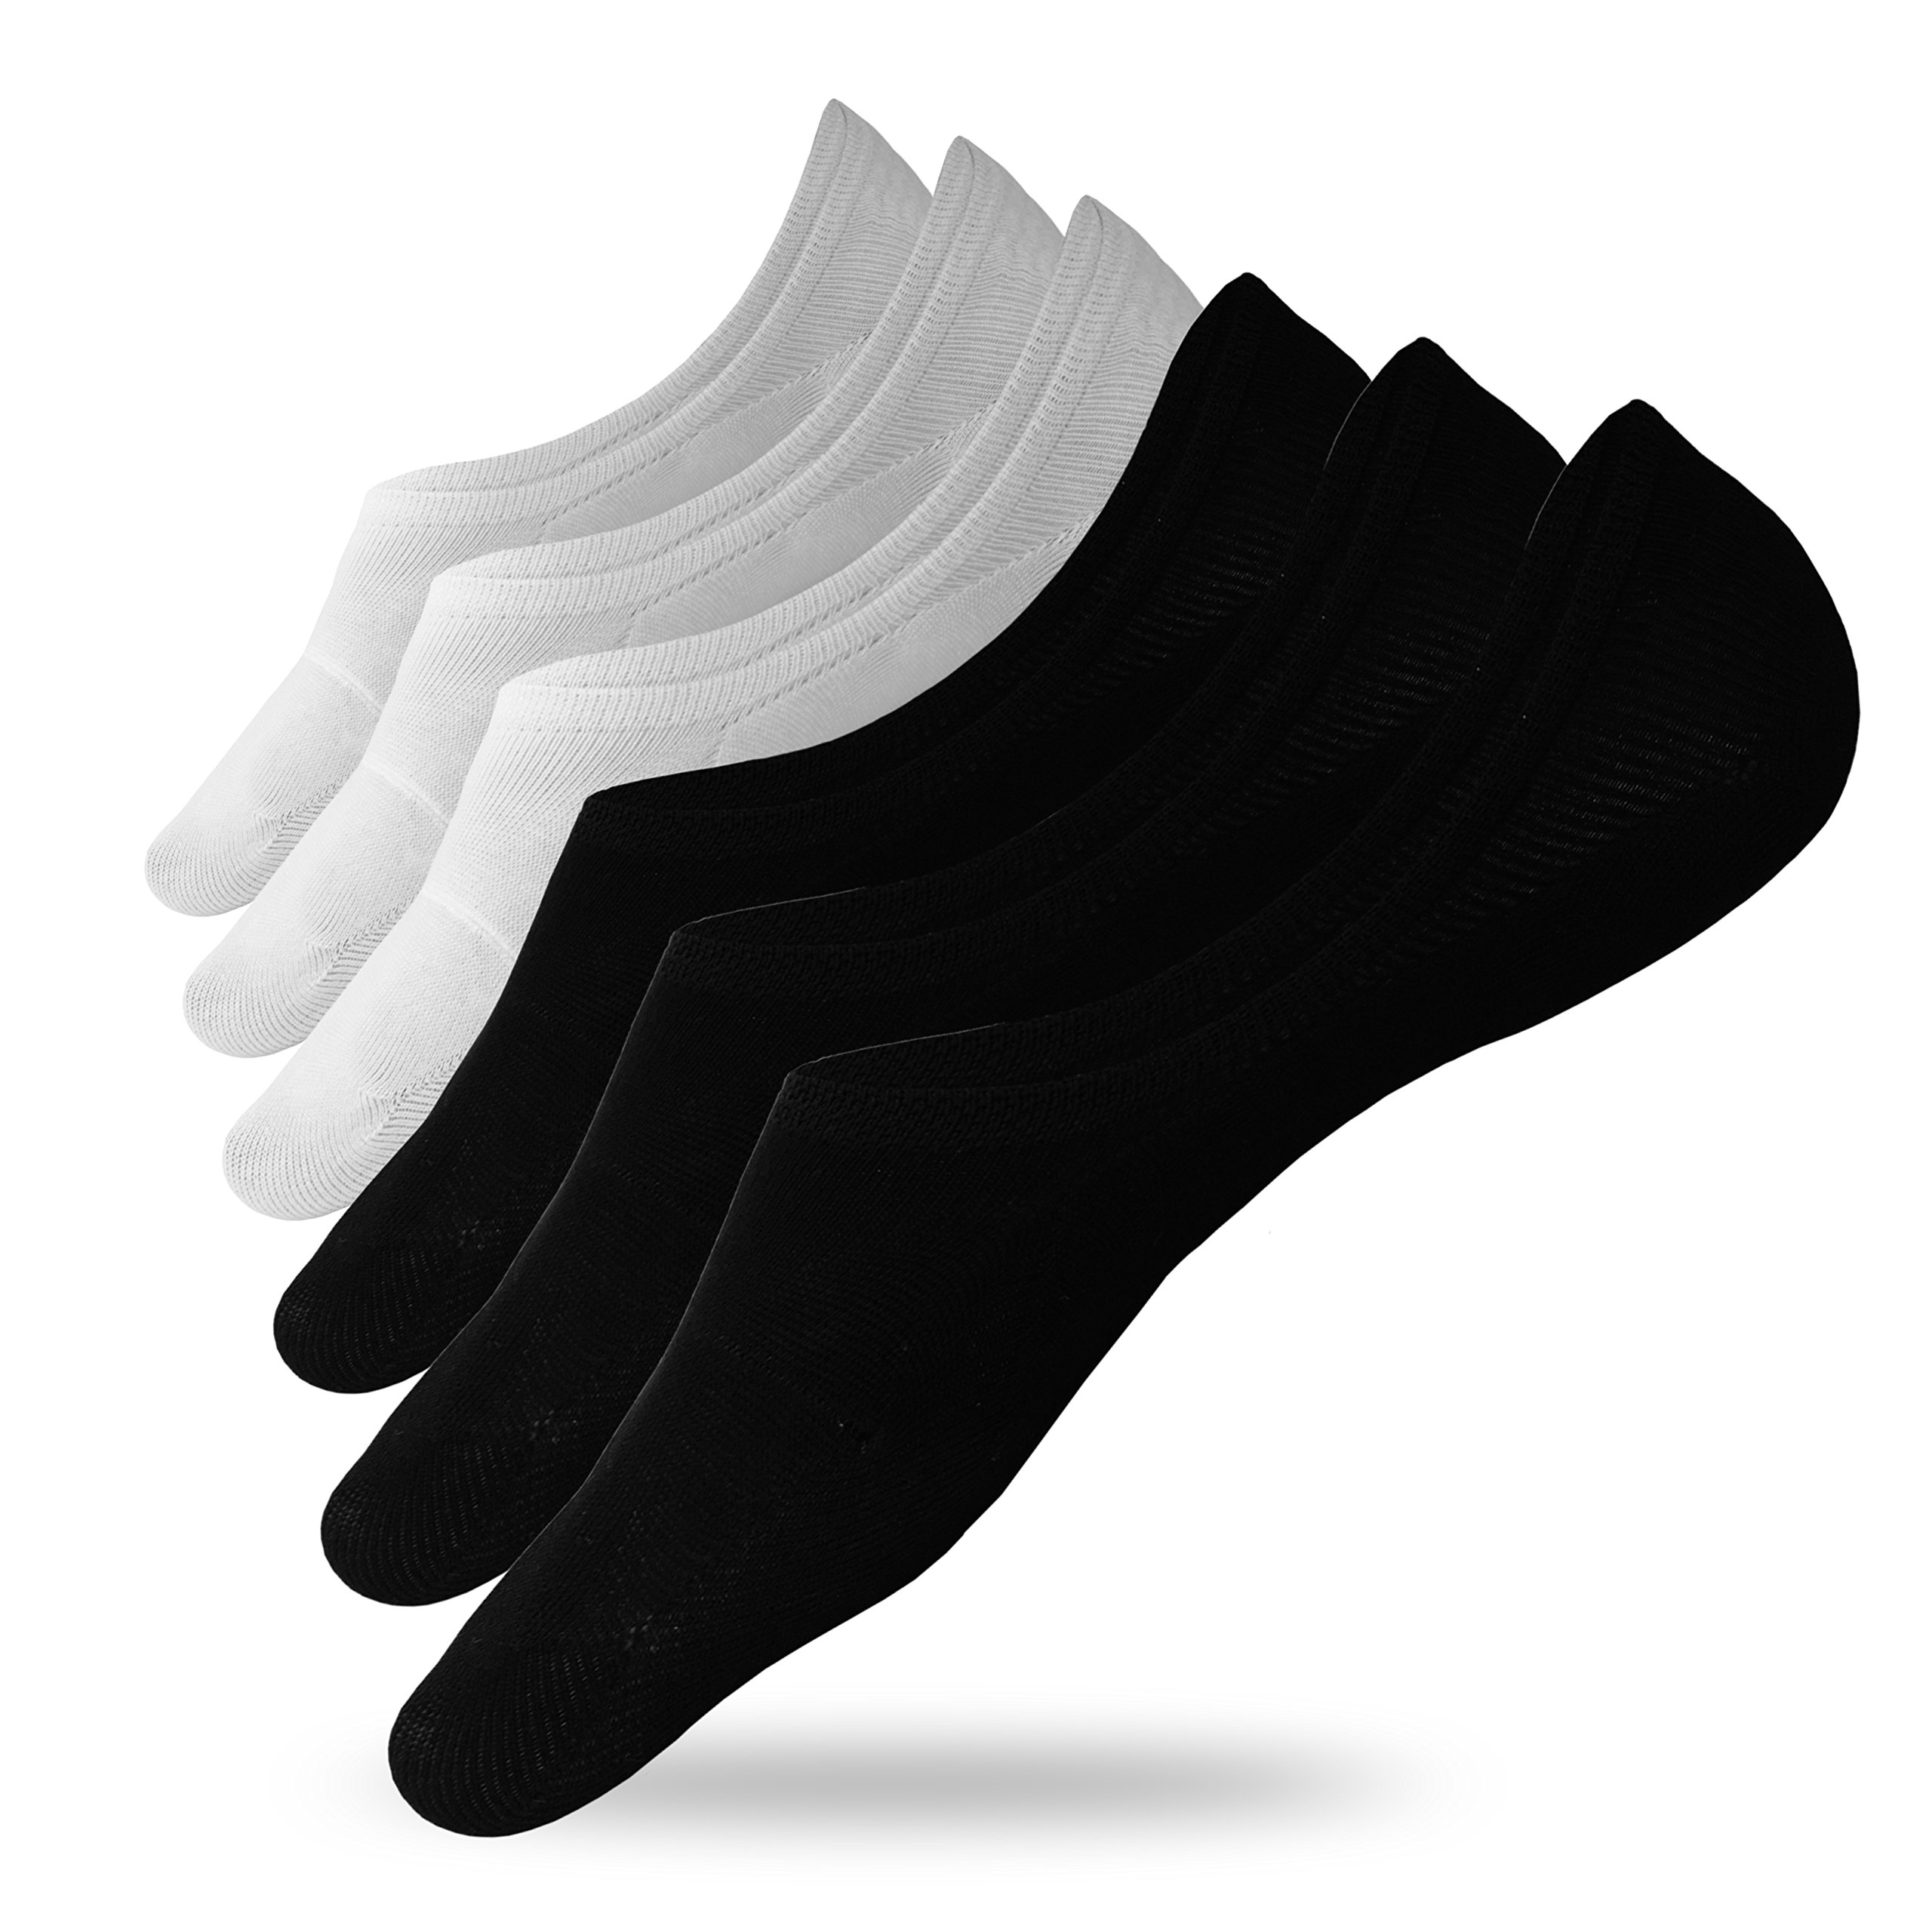 Eedor 6 Pack Mens No Show Socks Casual Low Cut Thin Loafers Invisible Non Slip Boat Liners X17 Black and White